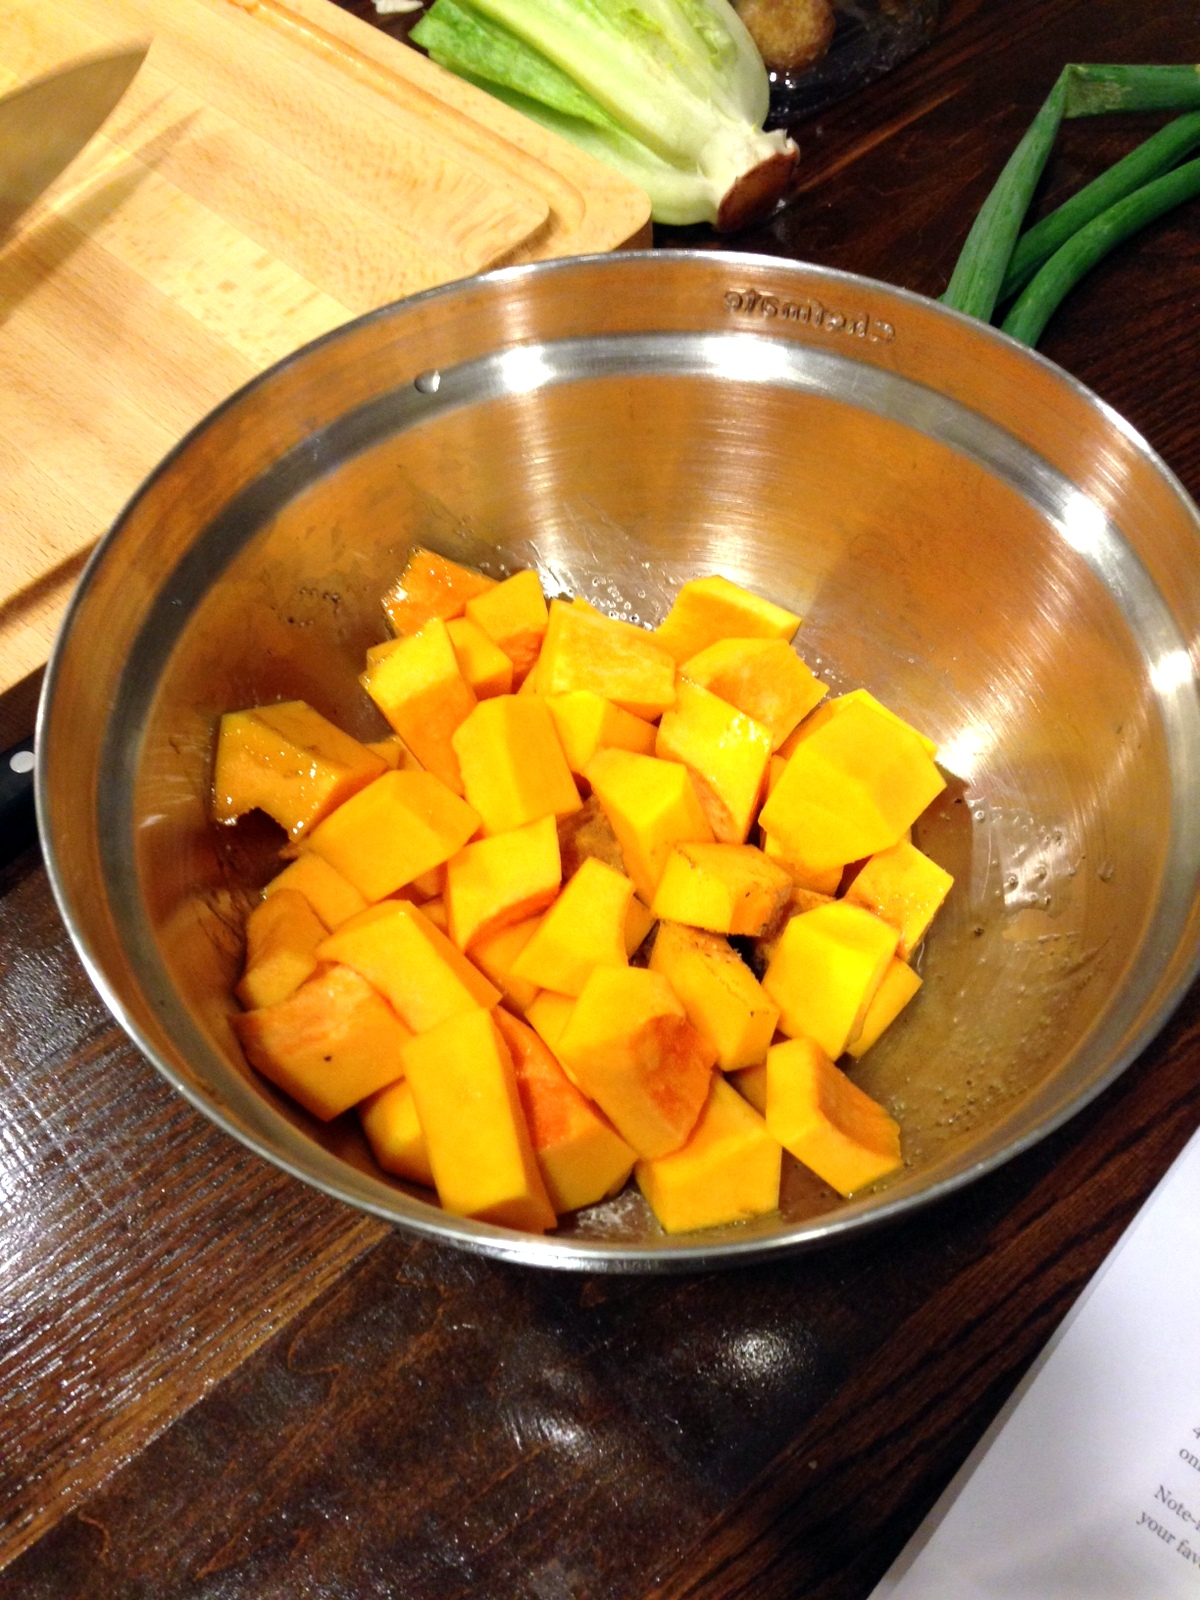 ... butternut squash. Add salt, lime juice and cumin to the squash. I like